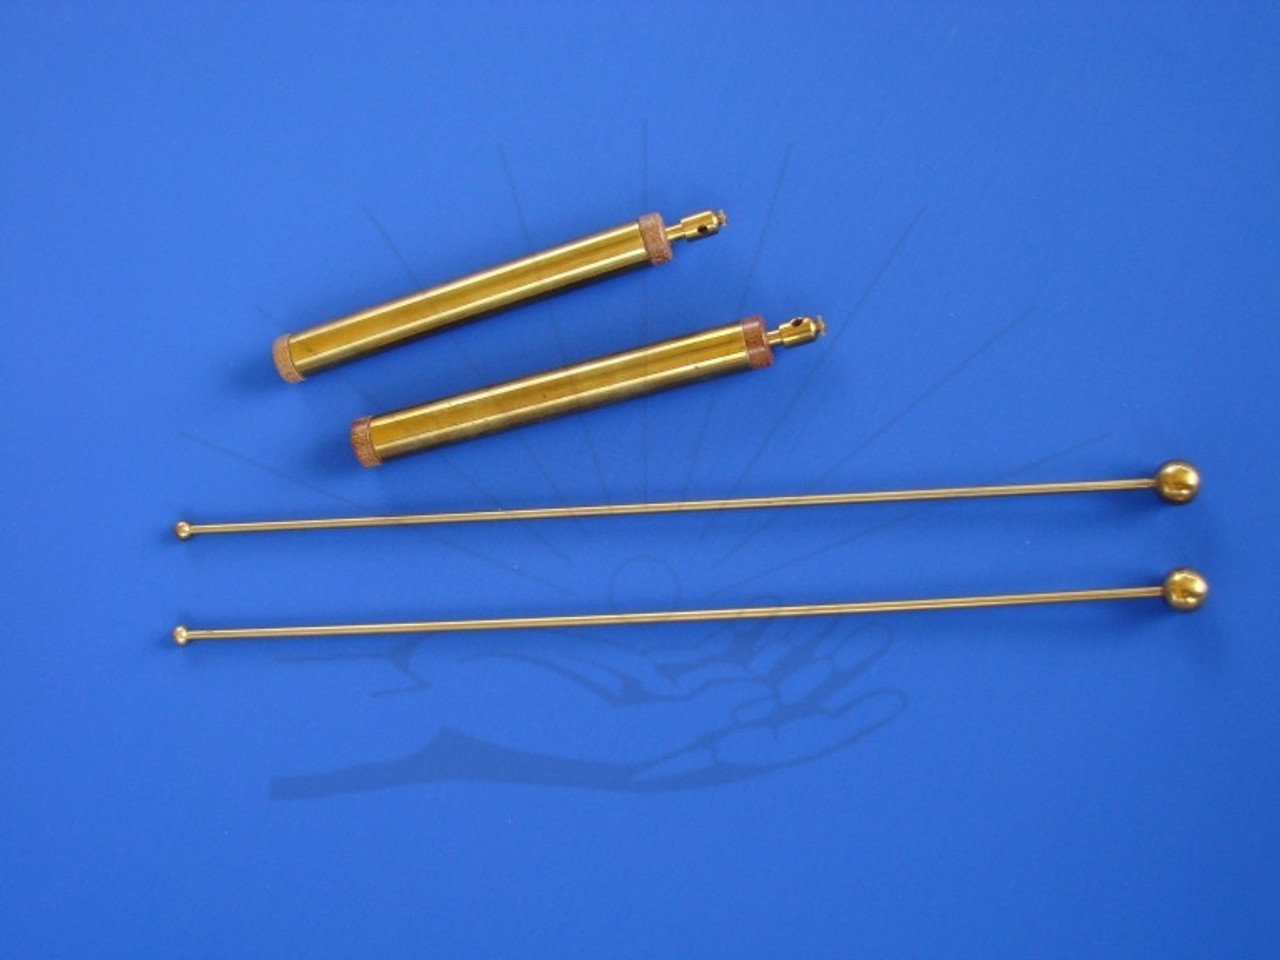 Adjustable L-Rods ( showing handle and rod separately)